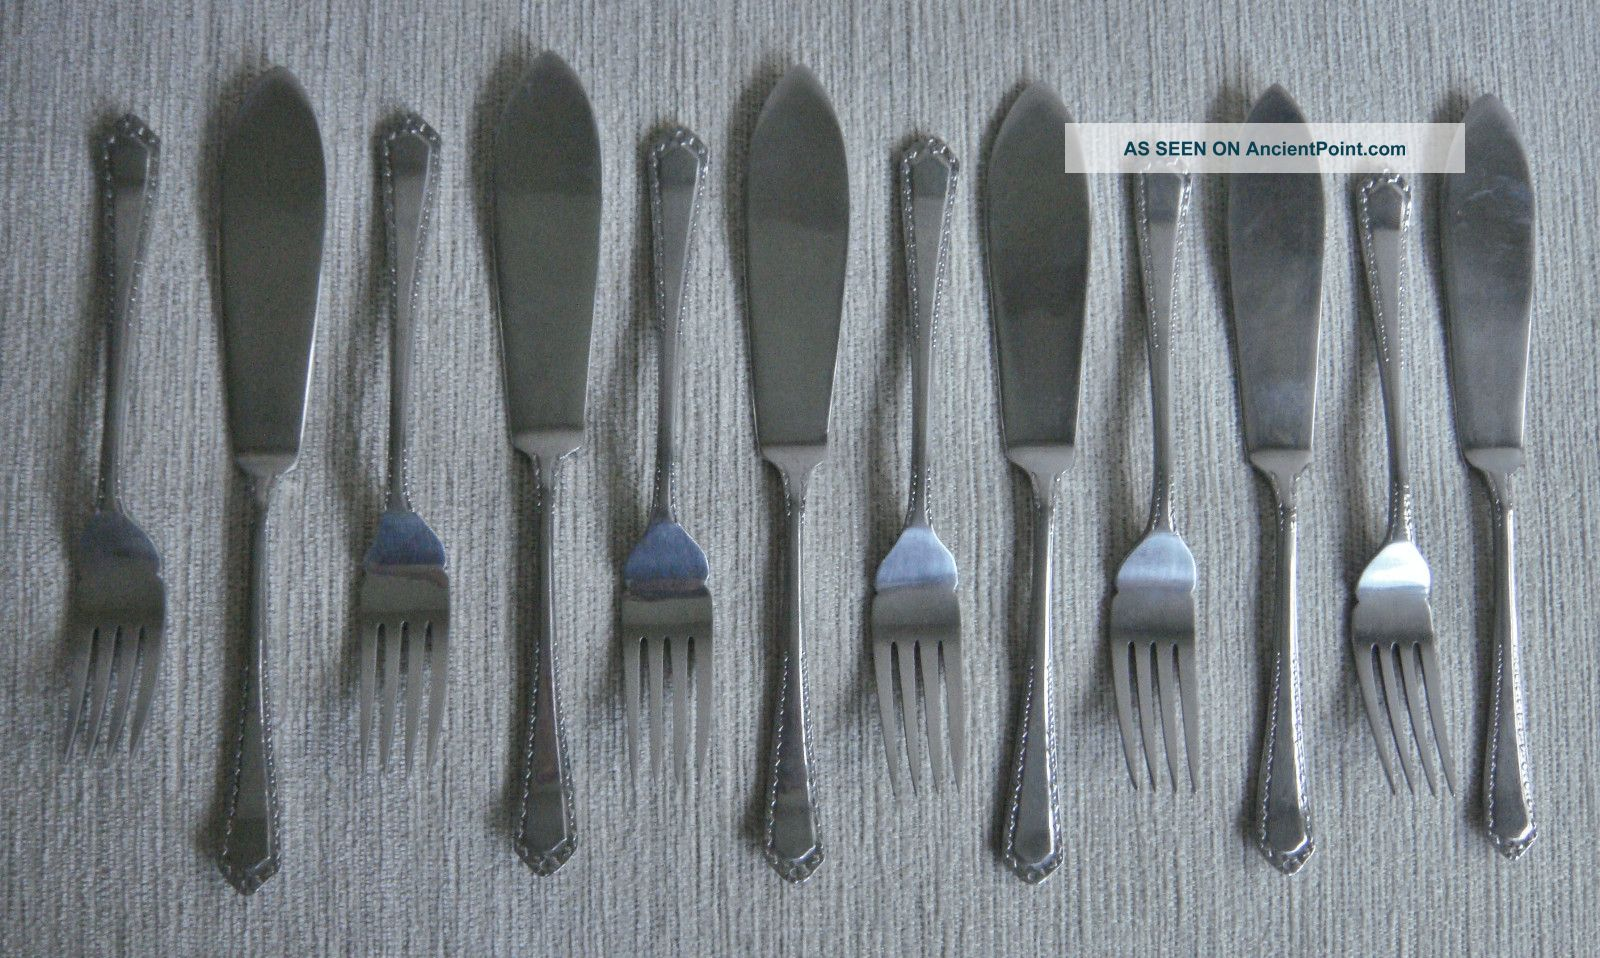 Quality Ornate Set Vintage Retro Universe Nickel Silver Fish Knives & Forks Other photo